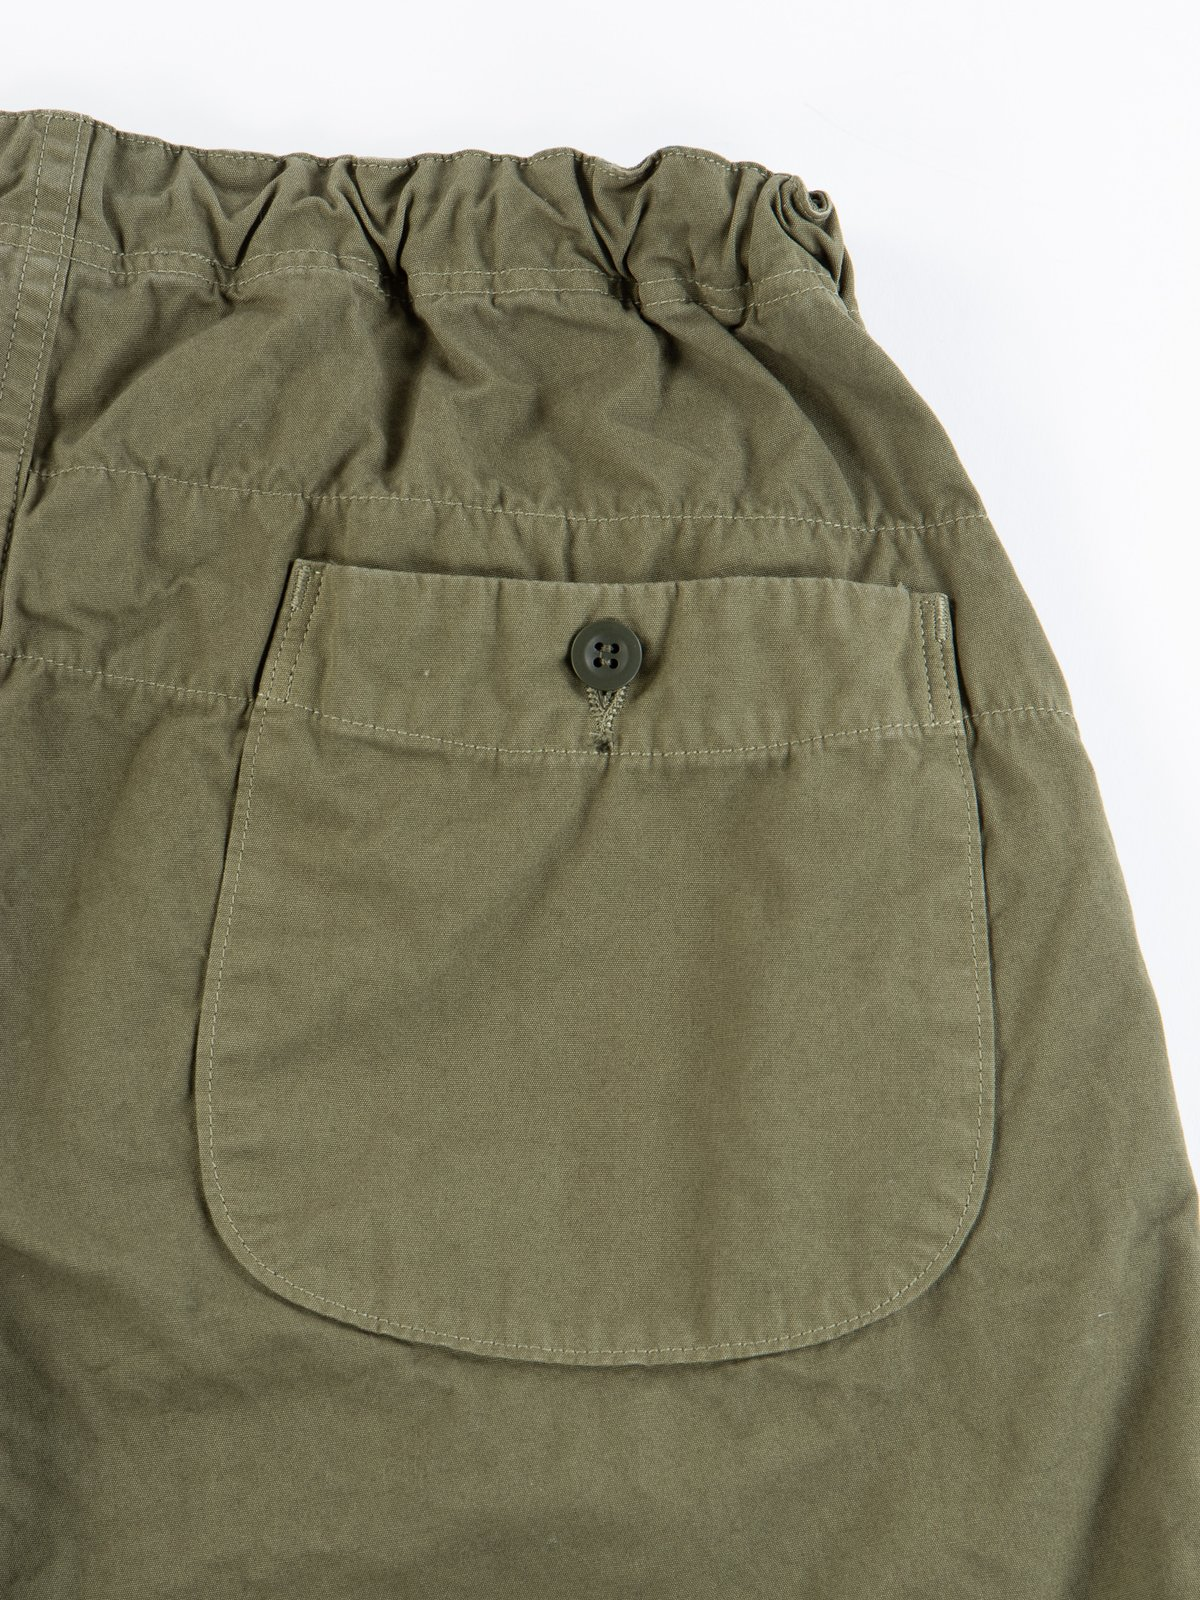 Army Overdyed Poplin TBB Mill Short - Image 4